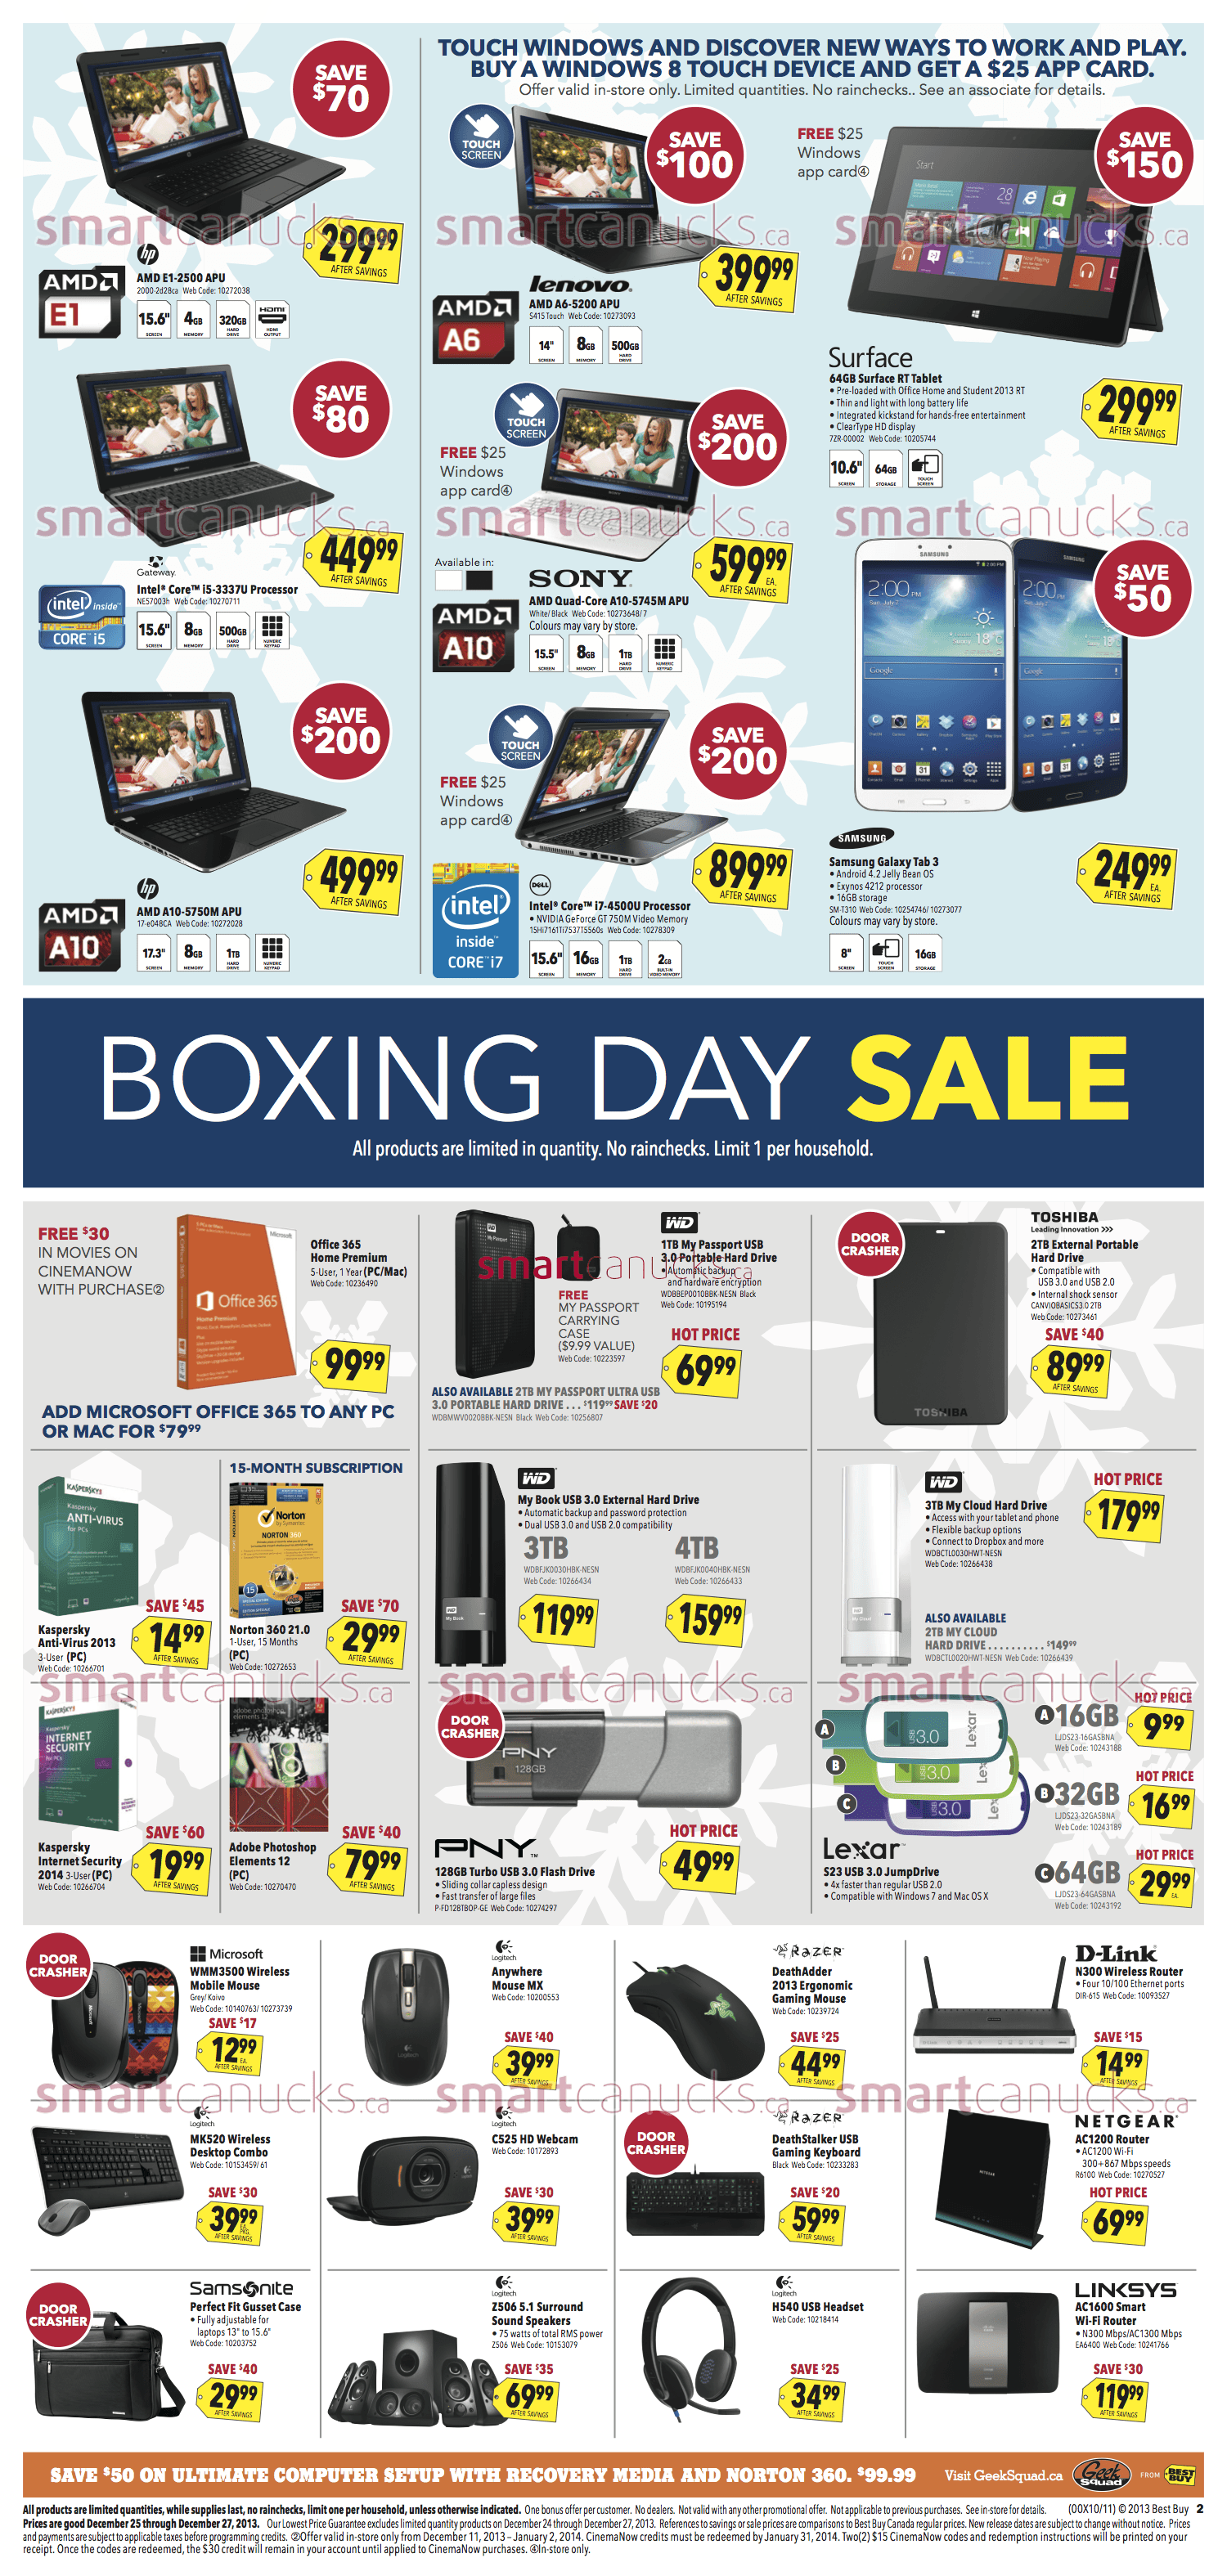 Boxing Day Best Buy Here are some of the Best Buy Boxing Day deals. LG 60″ p Hz Smart LED TV @ $ Canon T3i MP DSLR Camera Kit with Lens & Bag @ $